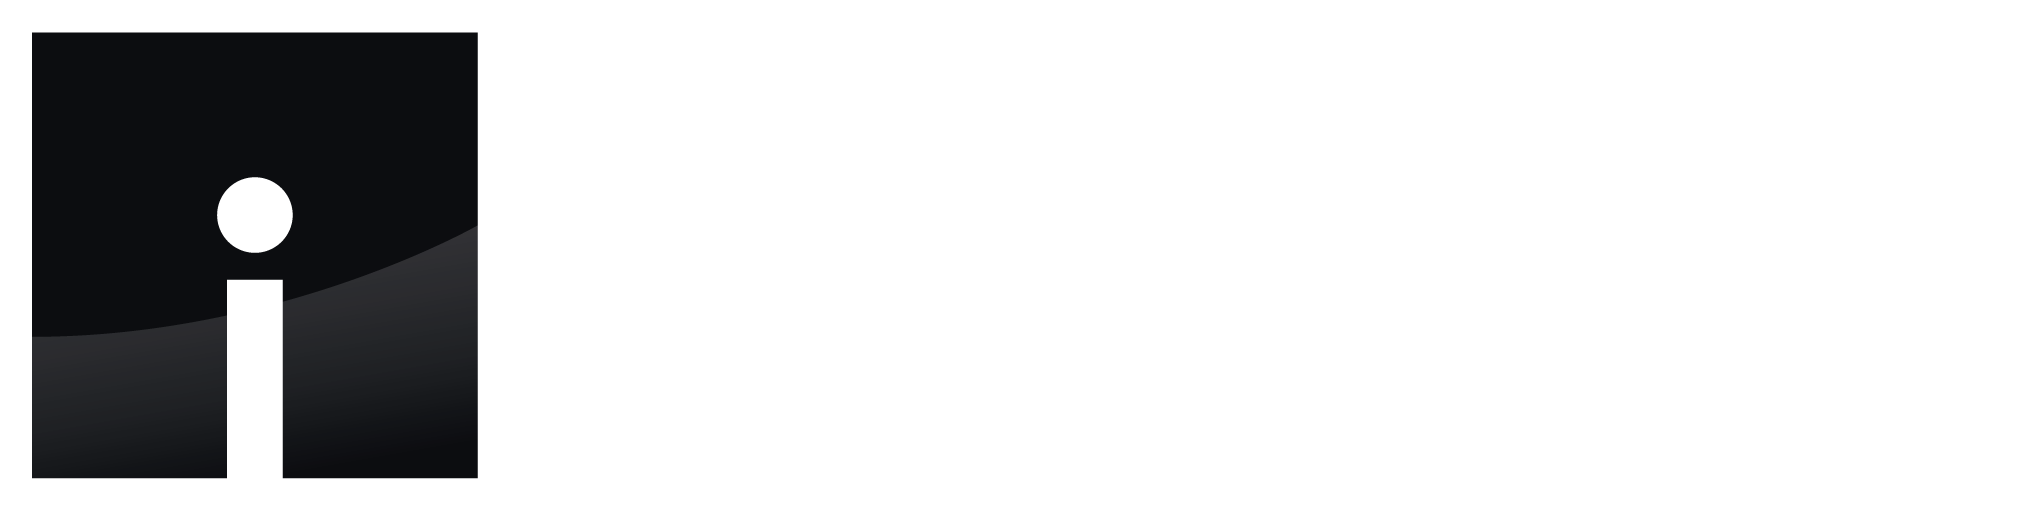 Ideal Floors Inc